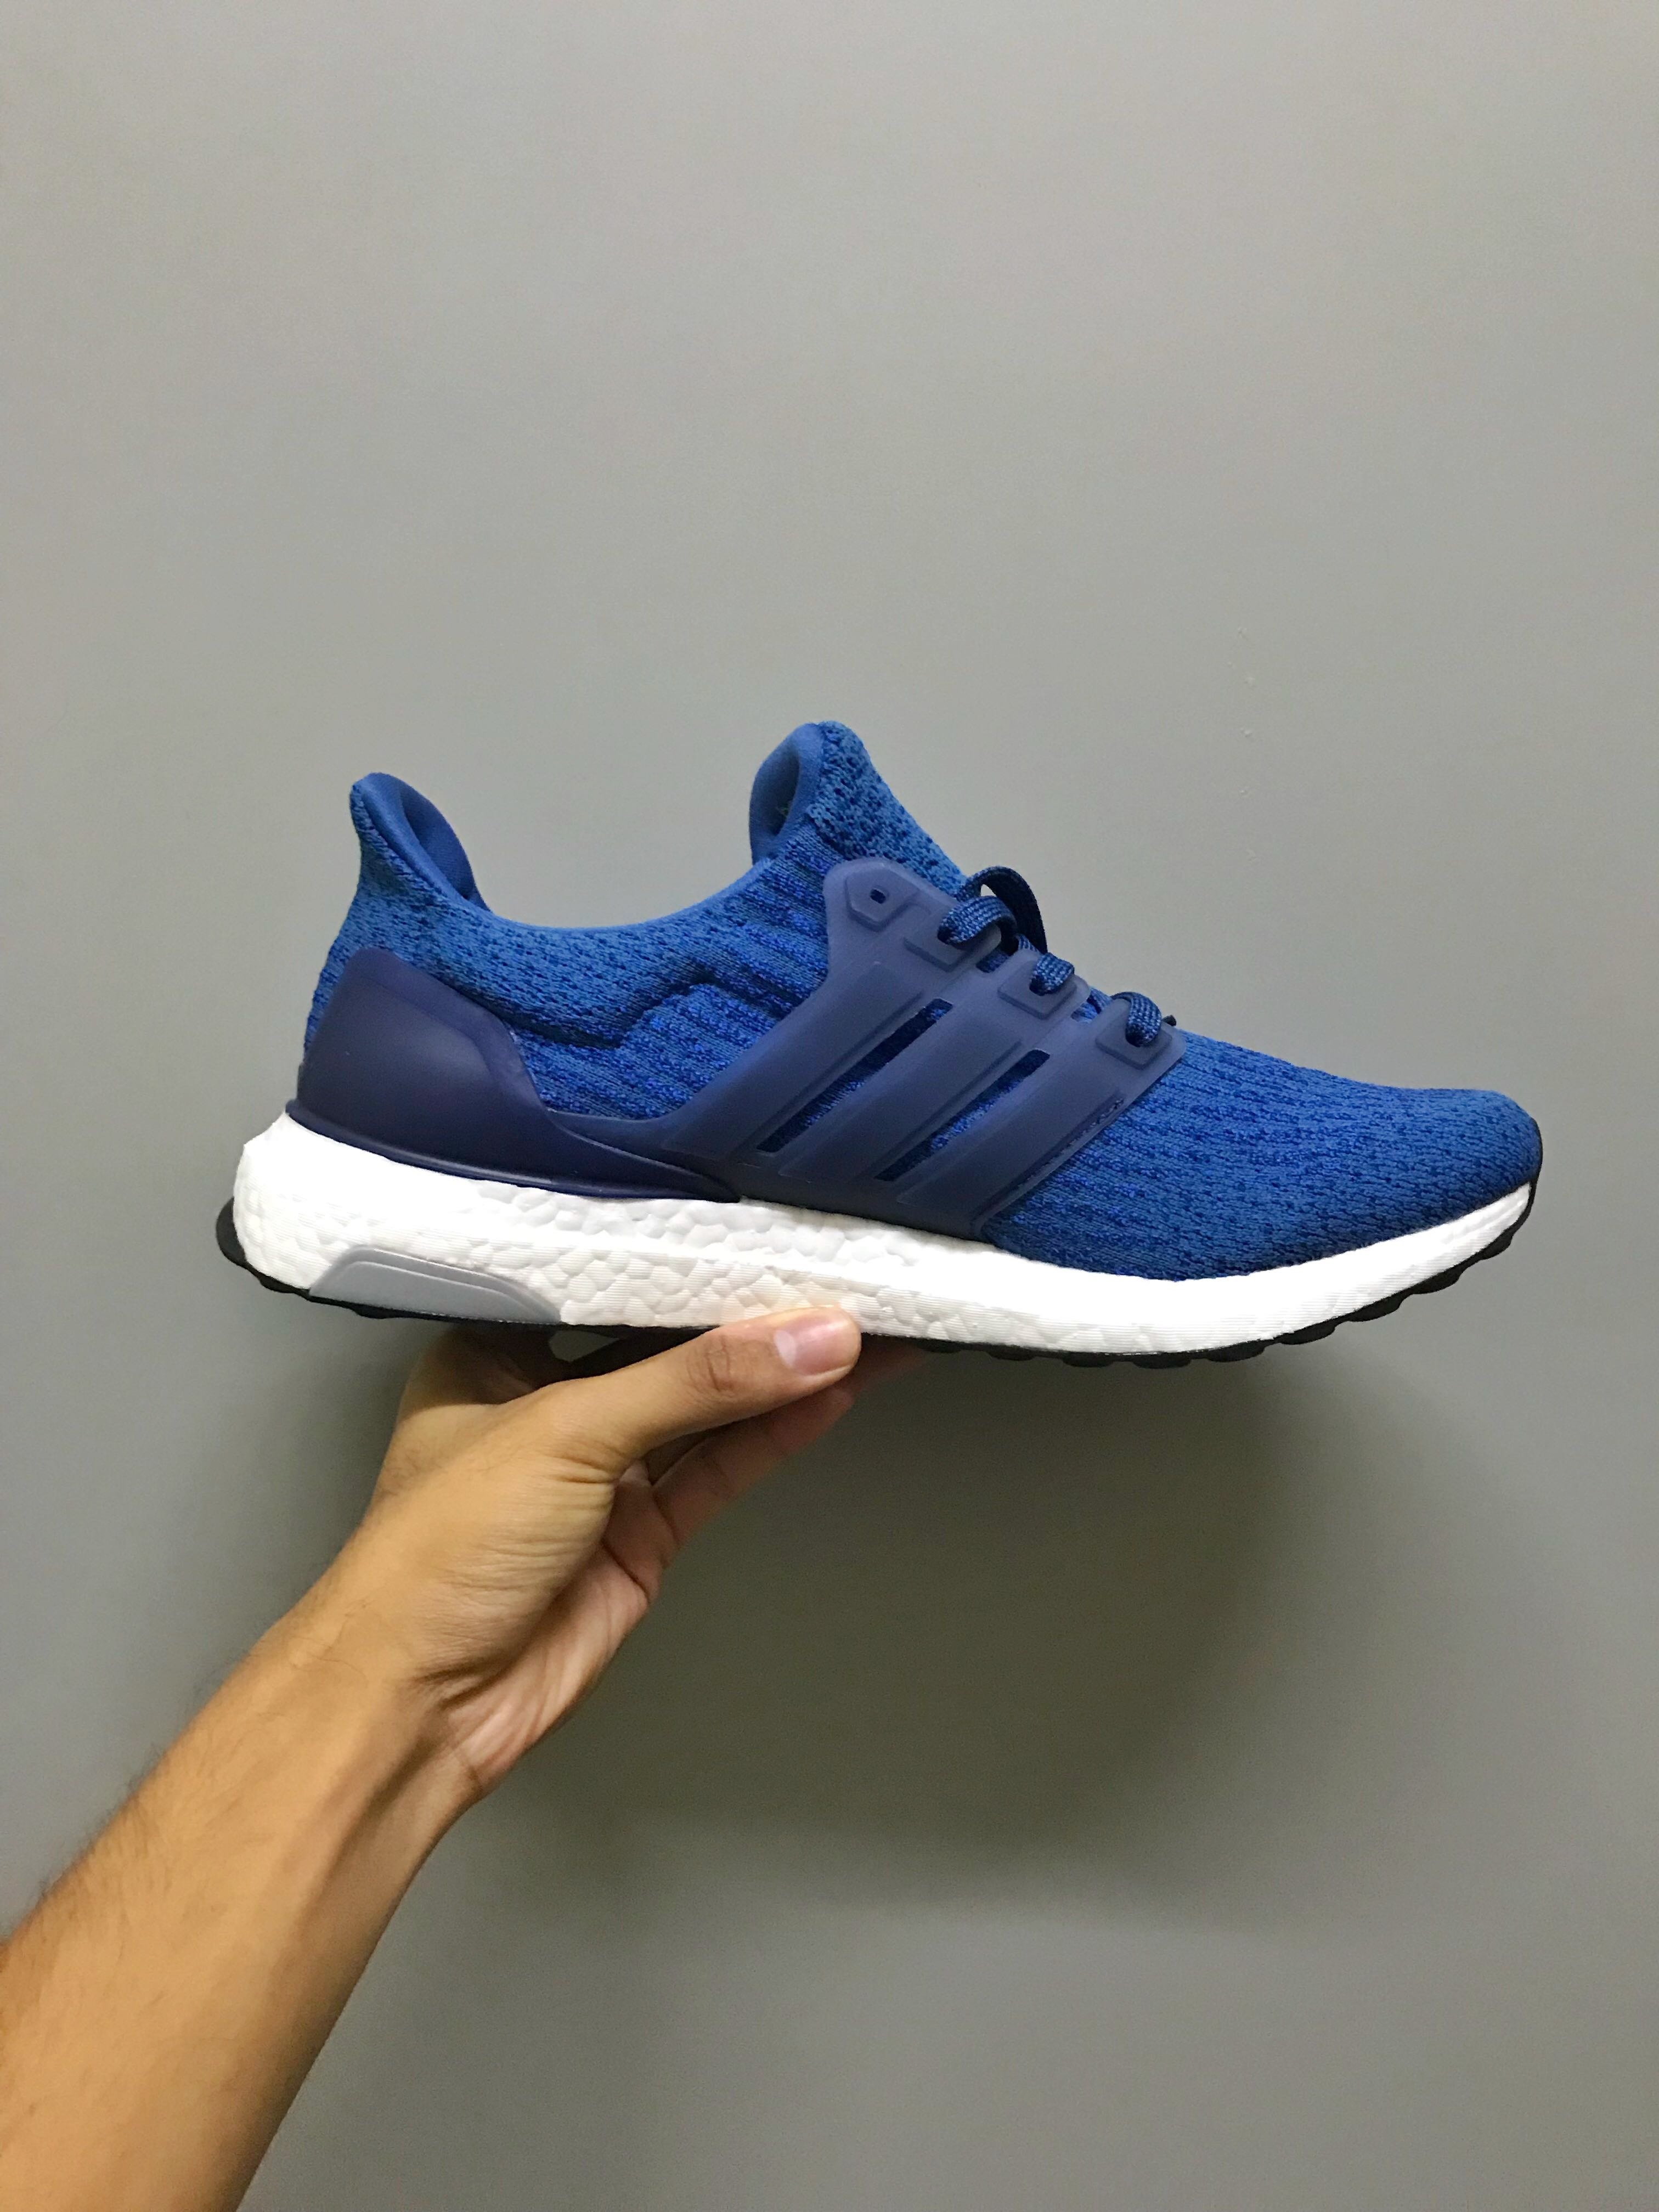 watch 8bcec 40a53 ... running shoes royal blue white 349a8 5fbae free shipping adidas  ultraboost royal blue mens fashion footwear on carousell cef65 61854